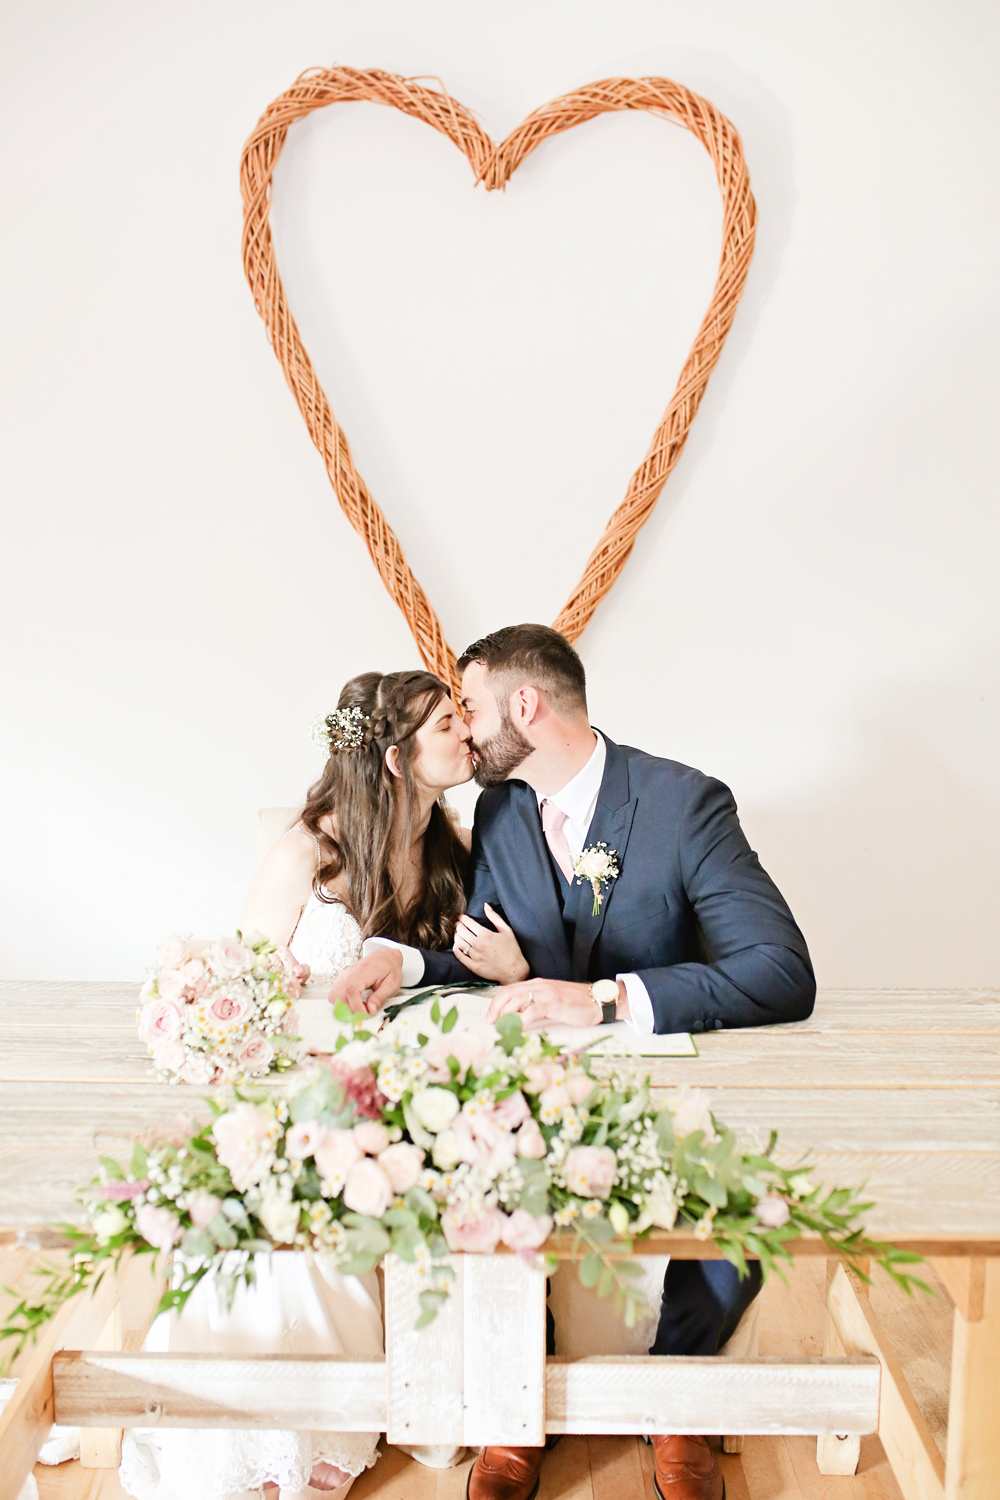 Wicker Heart Ceremony Aisle Backdrop Milling Barn Wedding Victoria Mitchell Photography